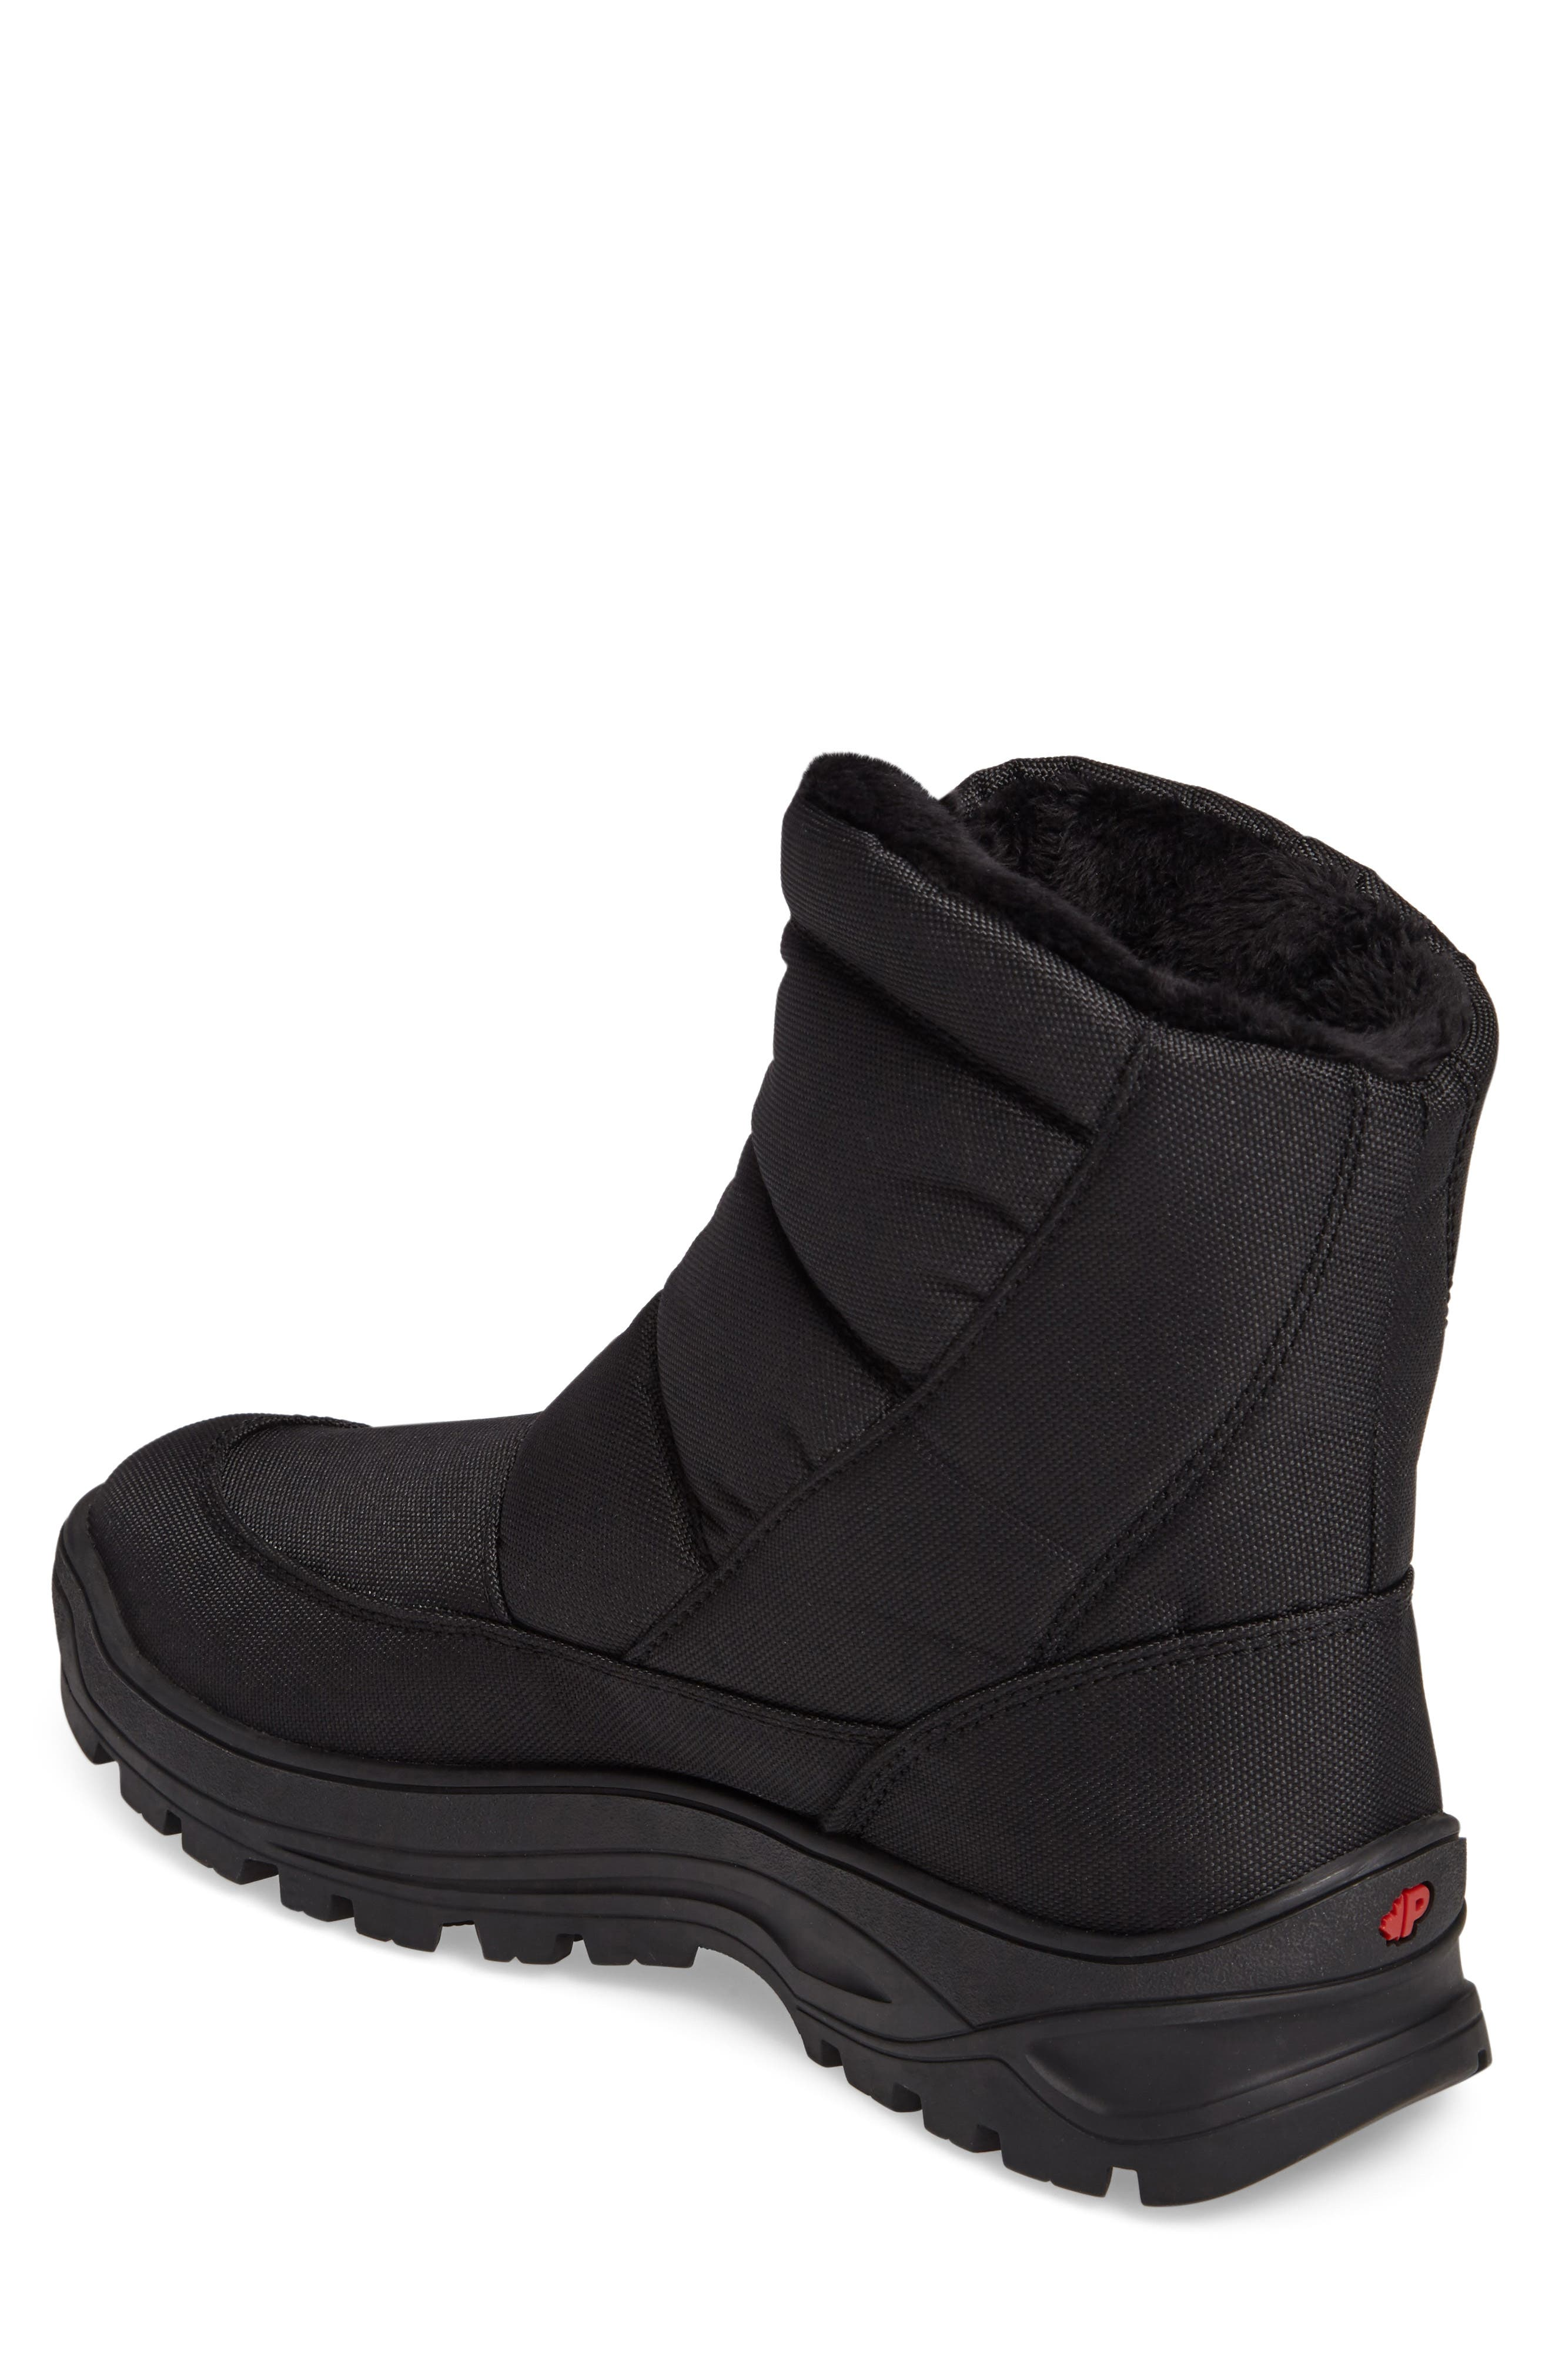 Icepack Boot with Faux Fur Lining,                             Alternate thumbnail 2, color,